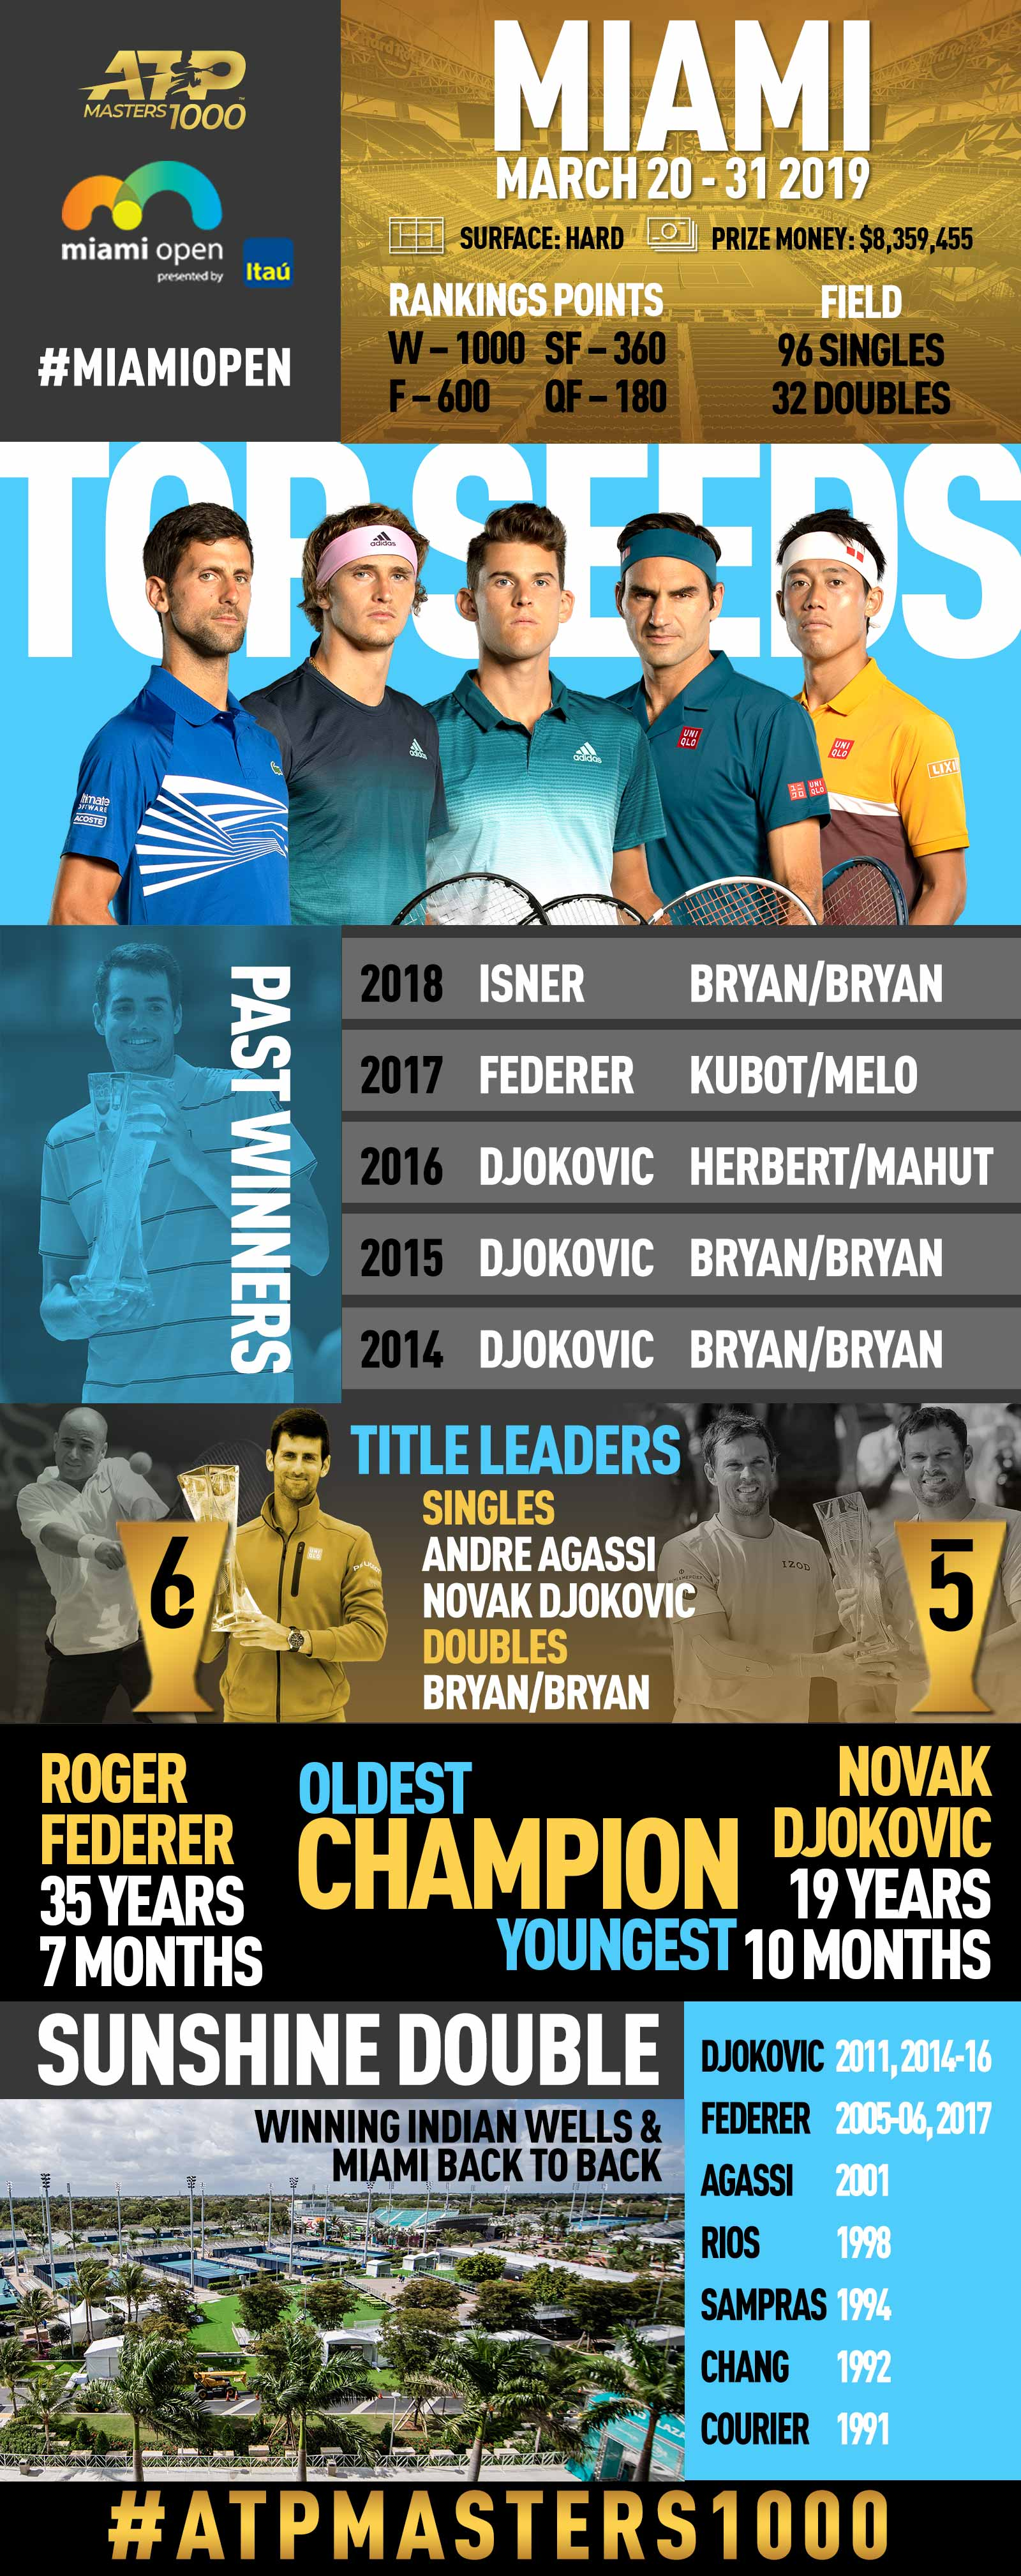 Facts &amp; Figures from the 2019 <a href='https://www.atptour.com/en/tournaments/miami/403/overview'>Miami Open presented by Itau</a>, an ATP Masters 1000 tennis tournament